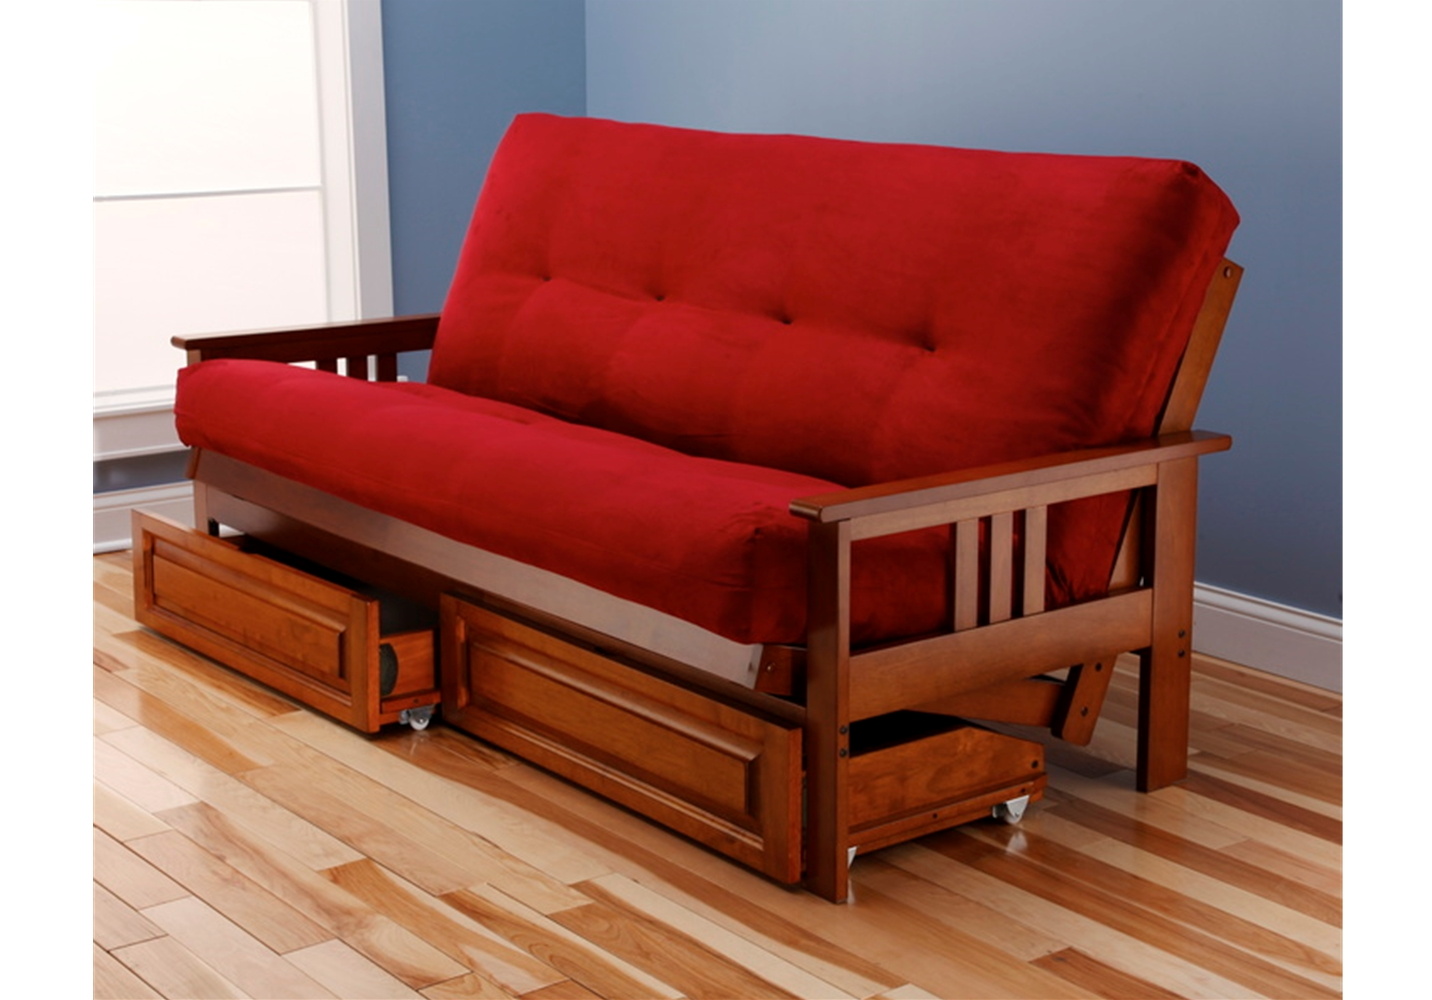 Barbados Mission Full Futon Frame with mattress in Suede Red - Buy ...